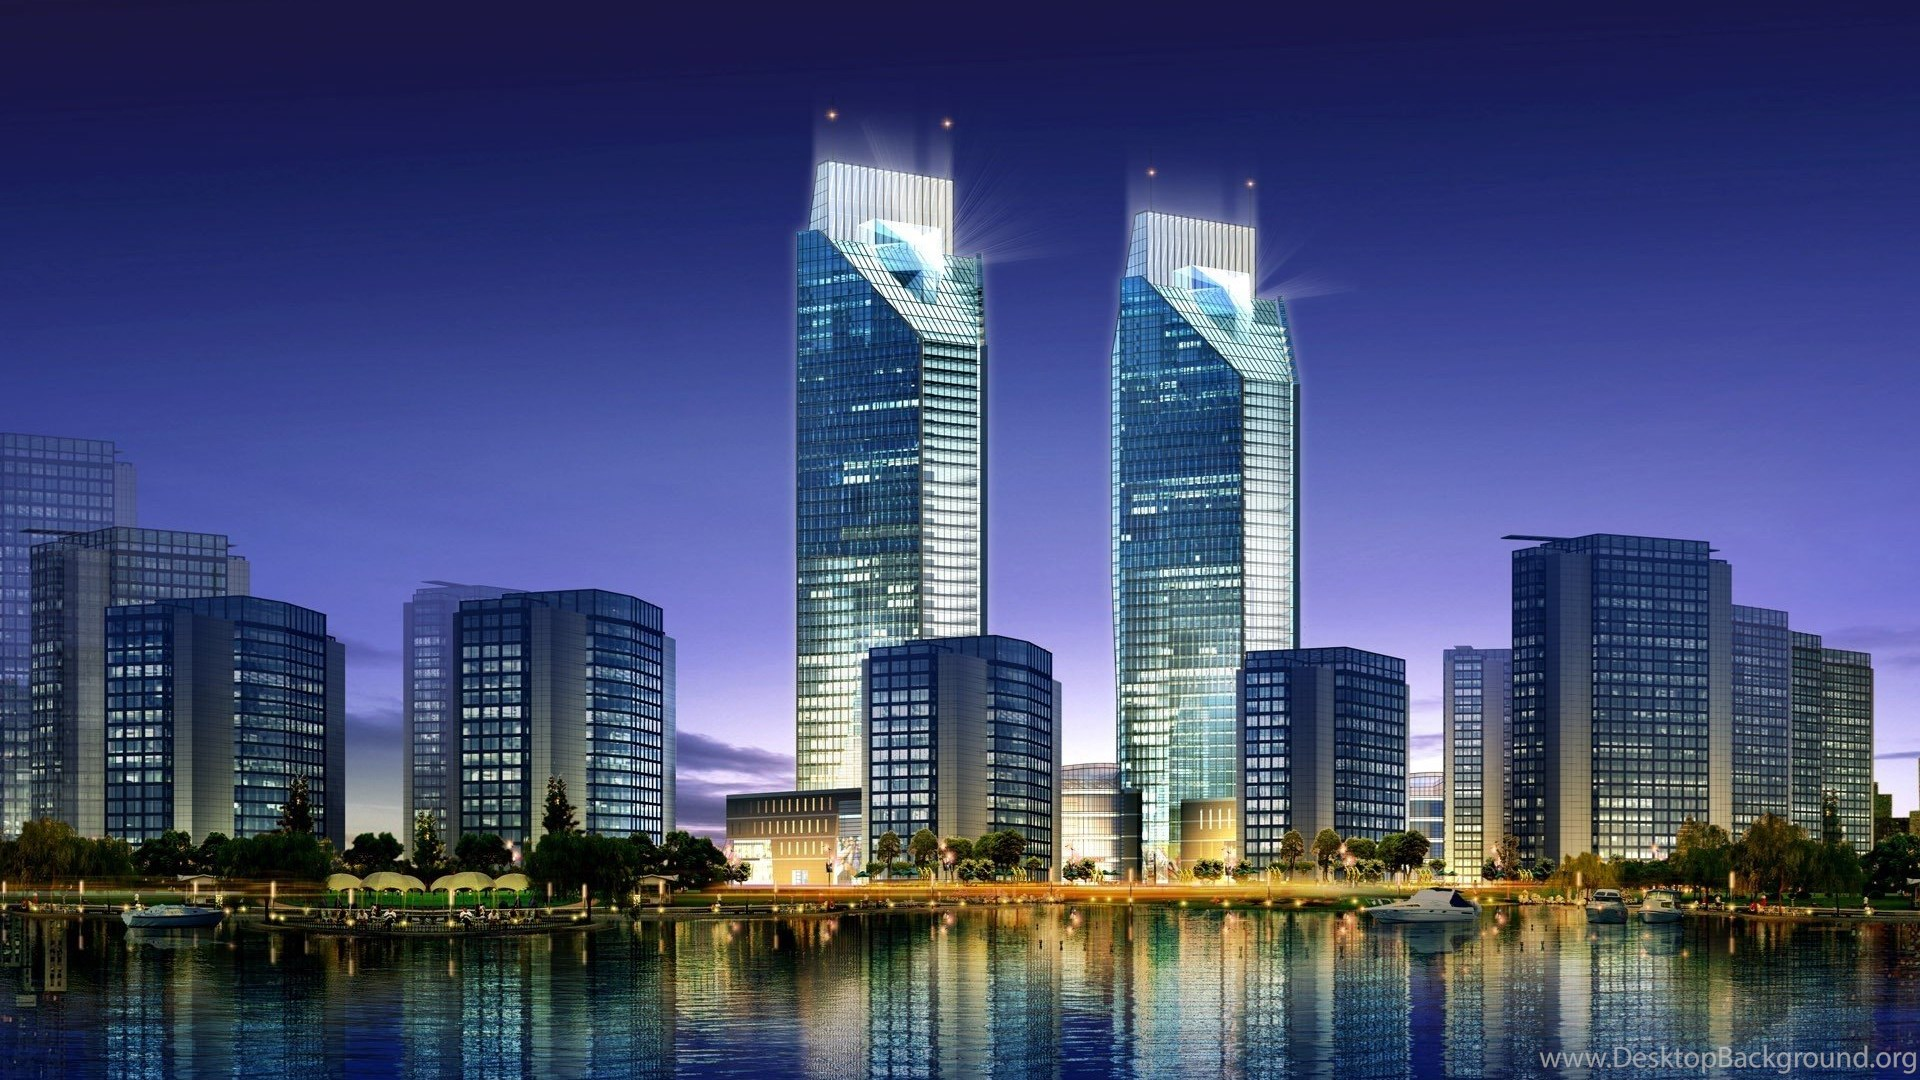 Modern Architecture Skyscrapers Cool Wallpapers Desktop Background